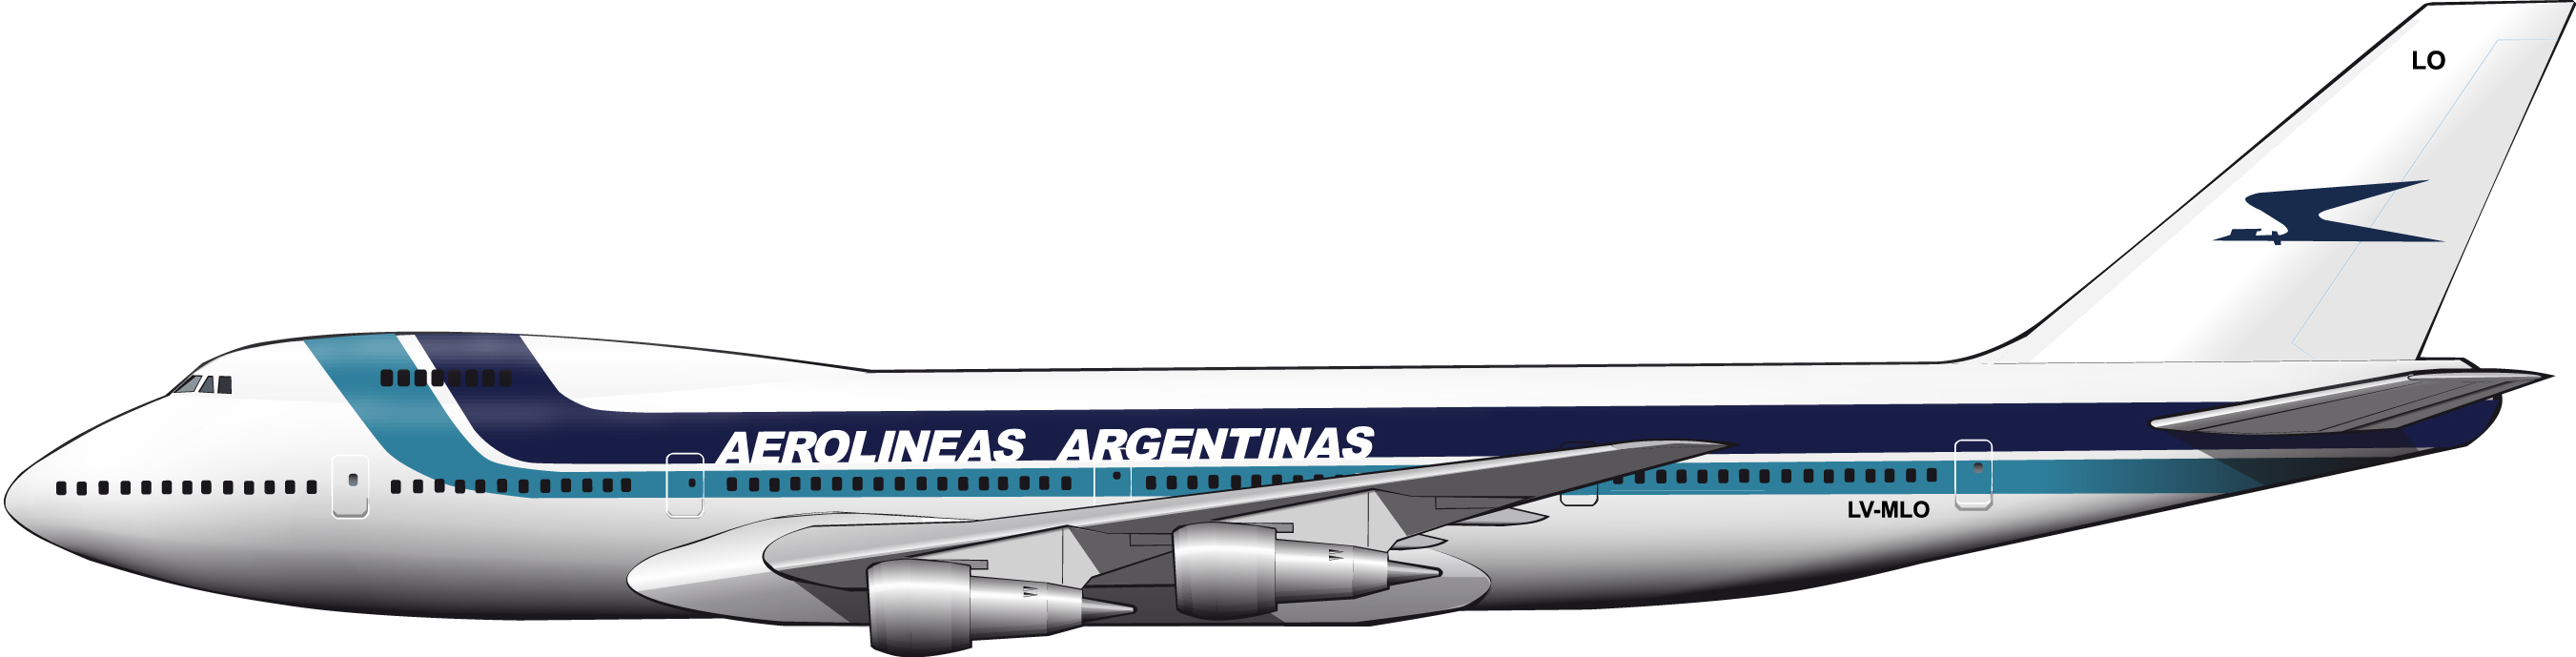 boeing747southafrican1971